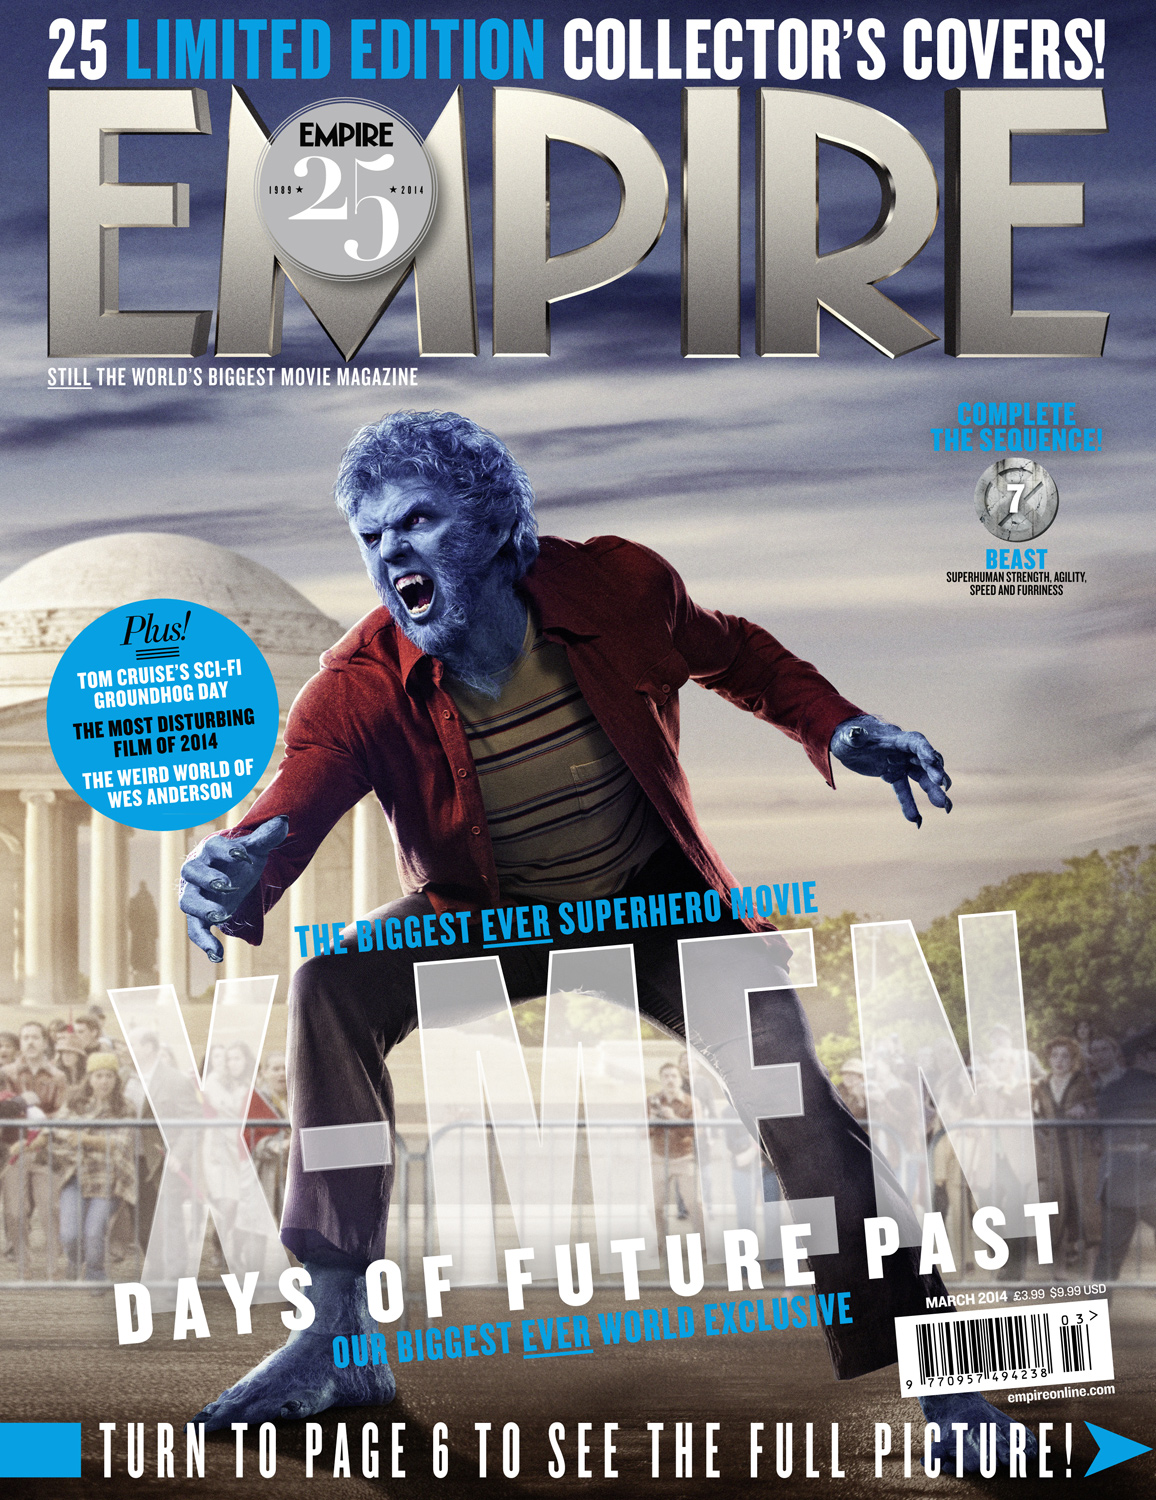 Empire - XDOFP Cover - 007 - Beast